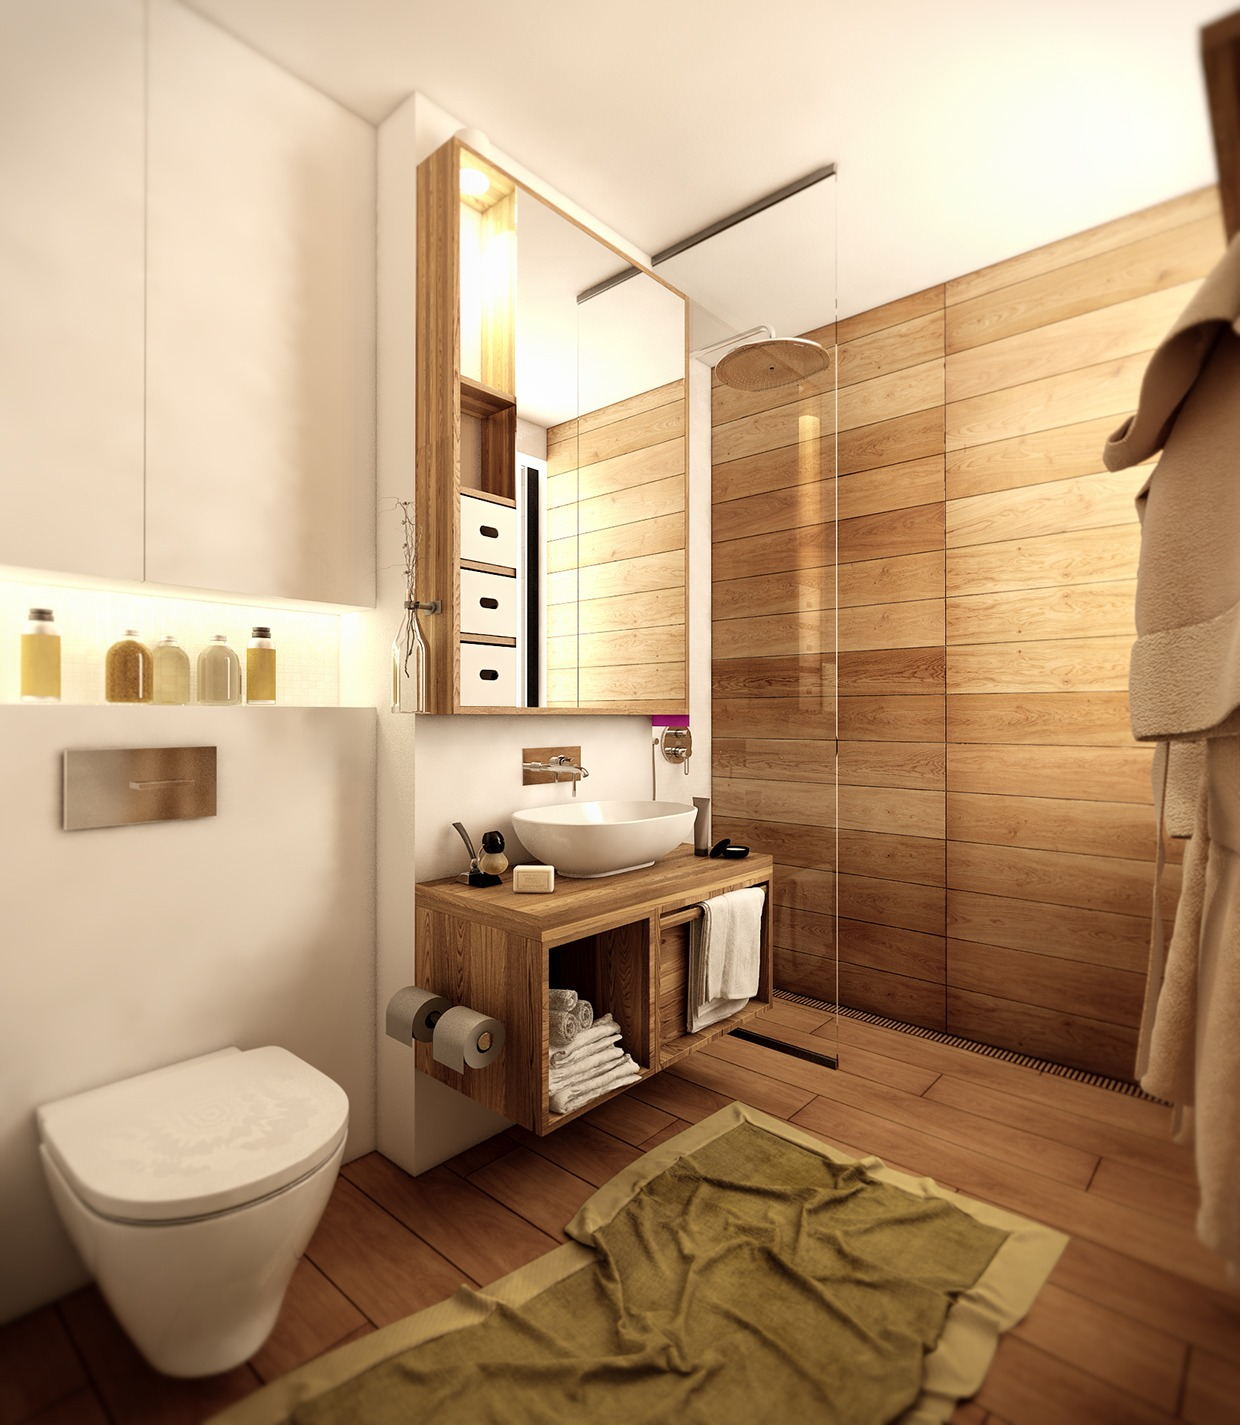 like architecture interior design follow us - Painted Wood Bathroom Interior